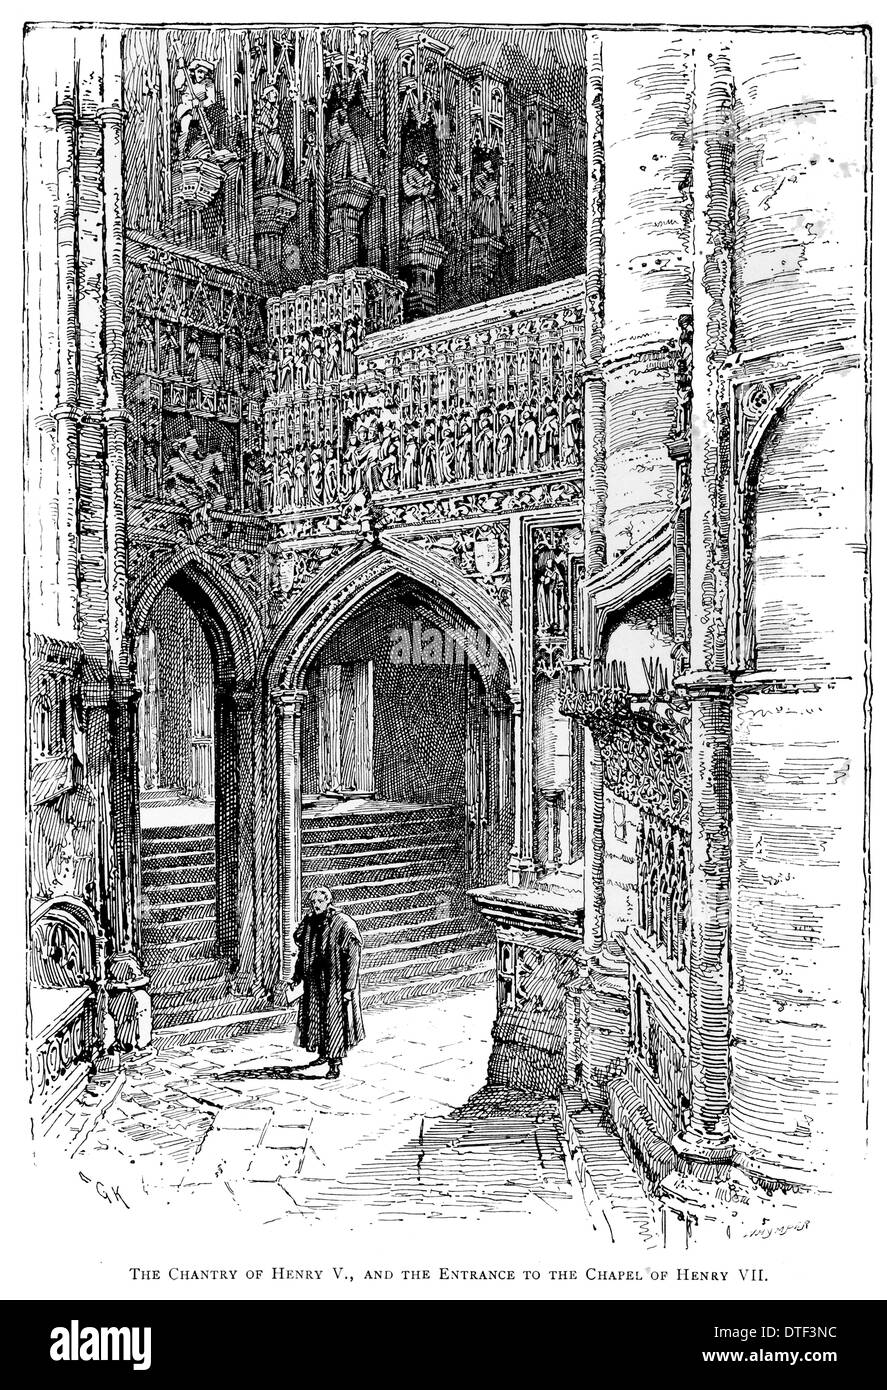 The Chantry of Henry V and the entrance to the chapel of Henry VIII Circa 1890 - Stock Image